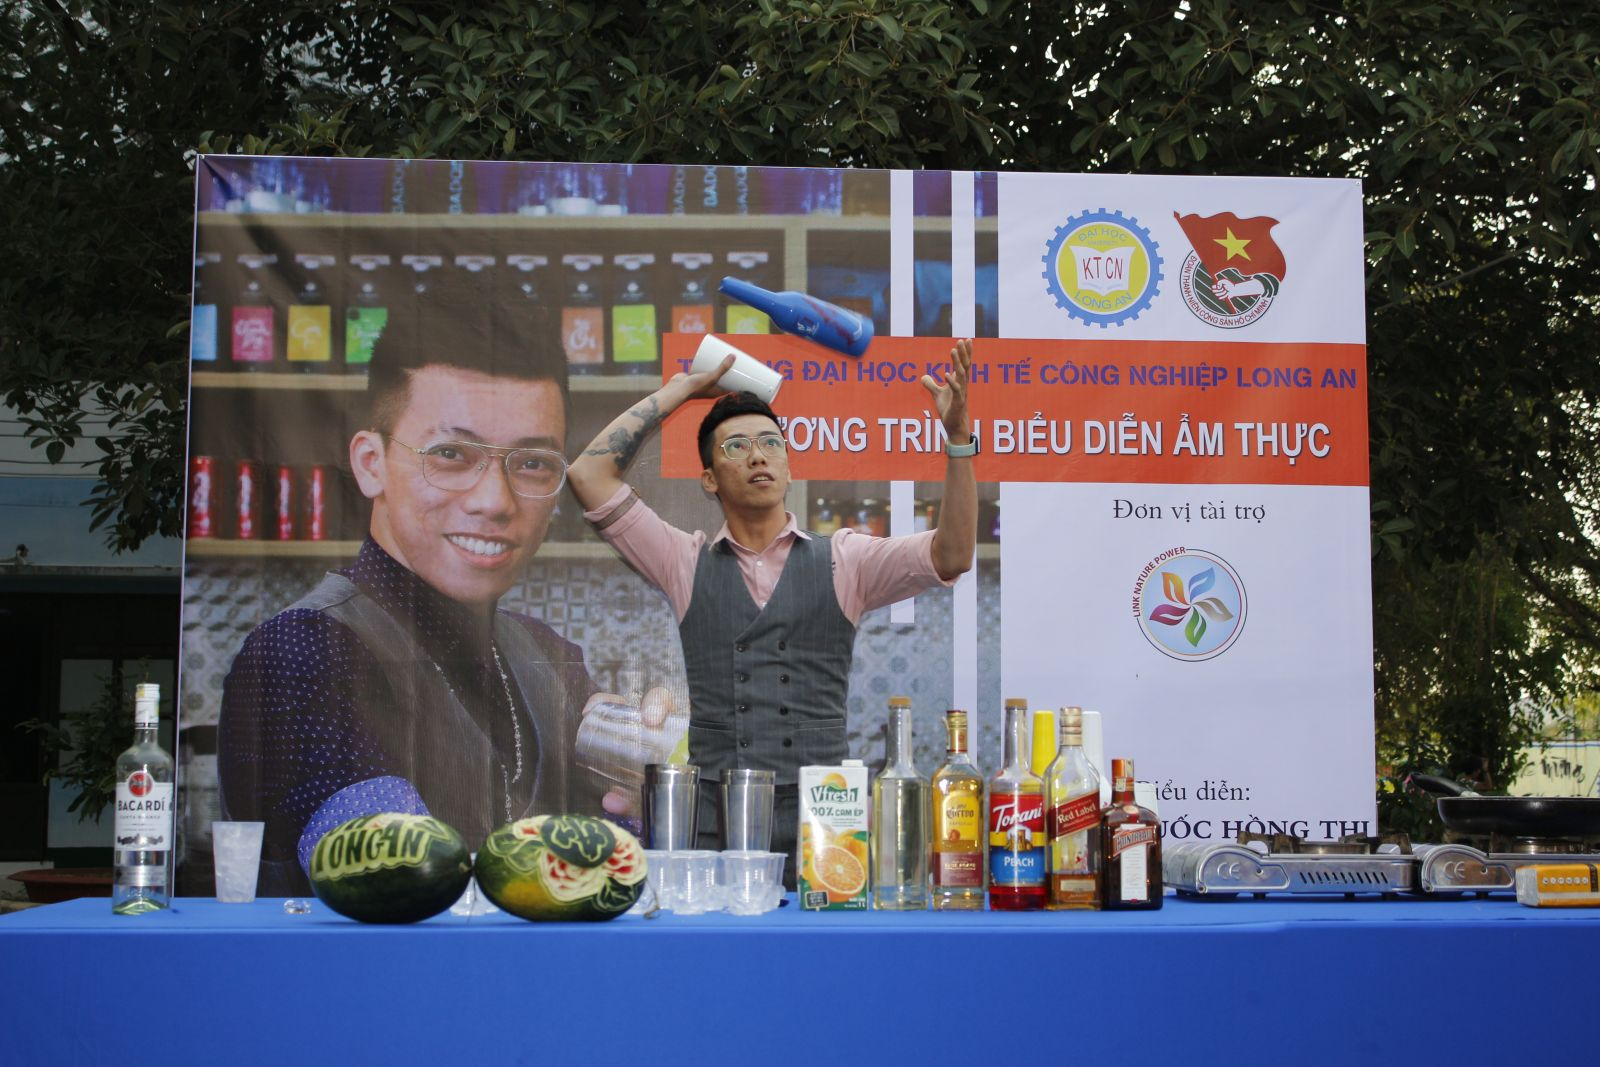 Master Le Quang Hong Thi performs the culinary program at the festival